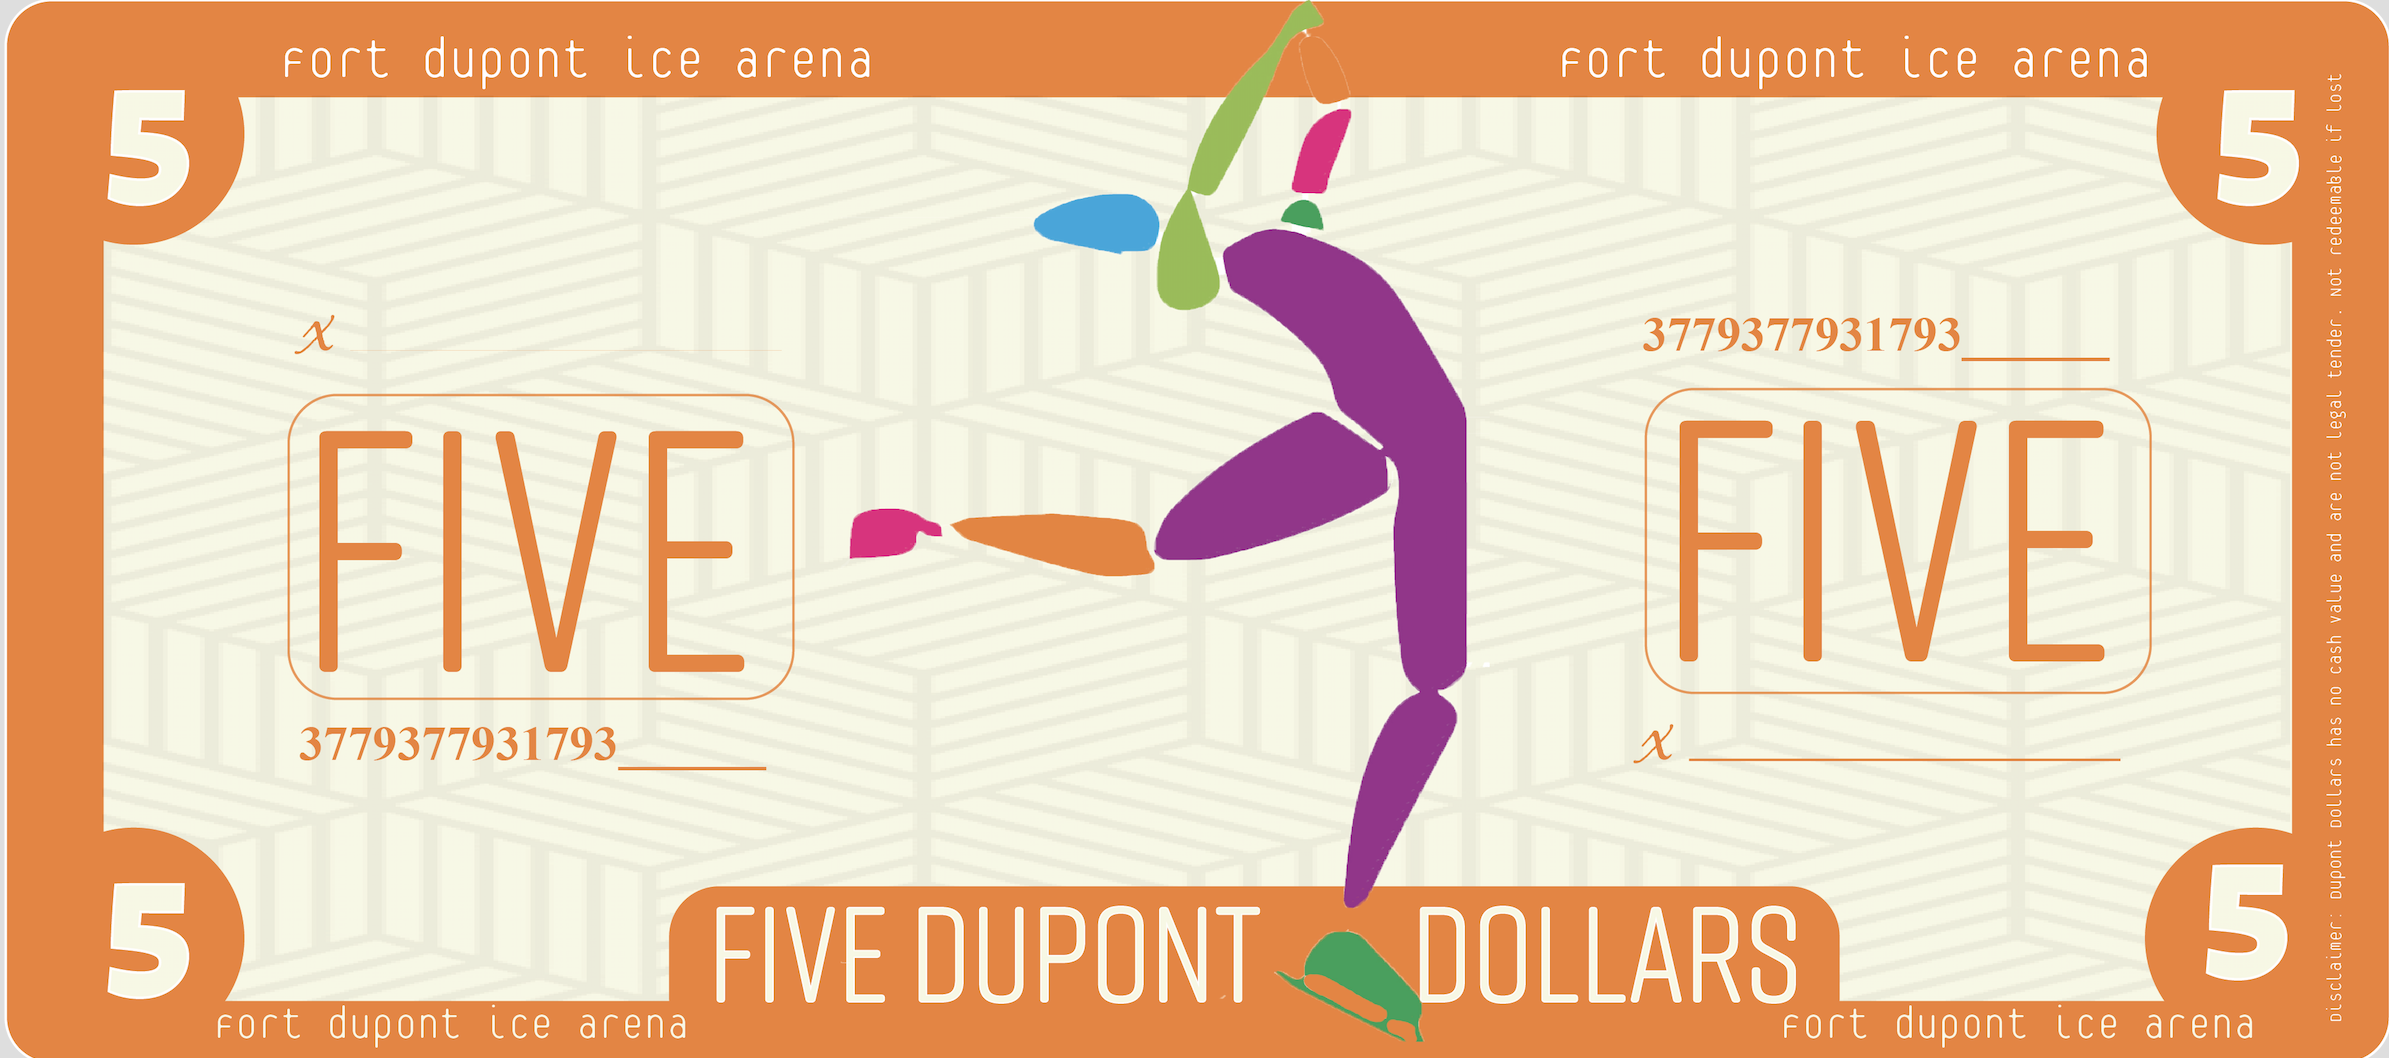 FDIA Dupont Dollars _ Five